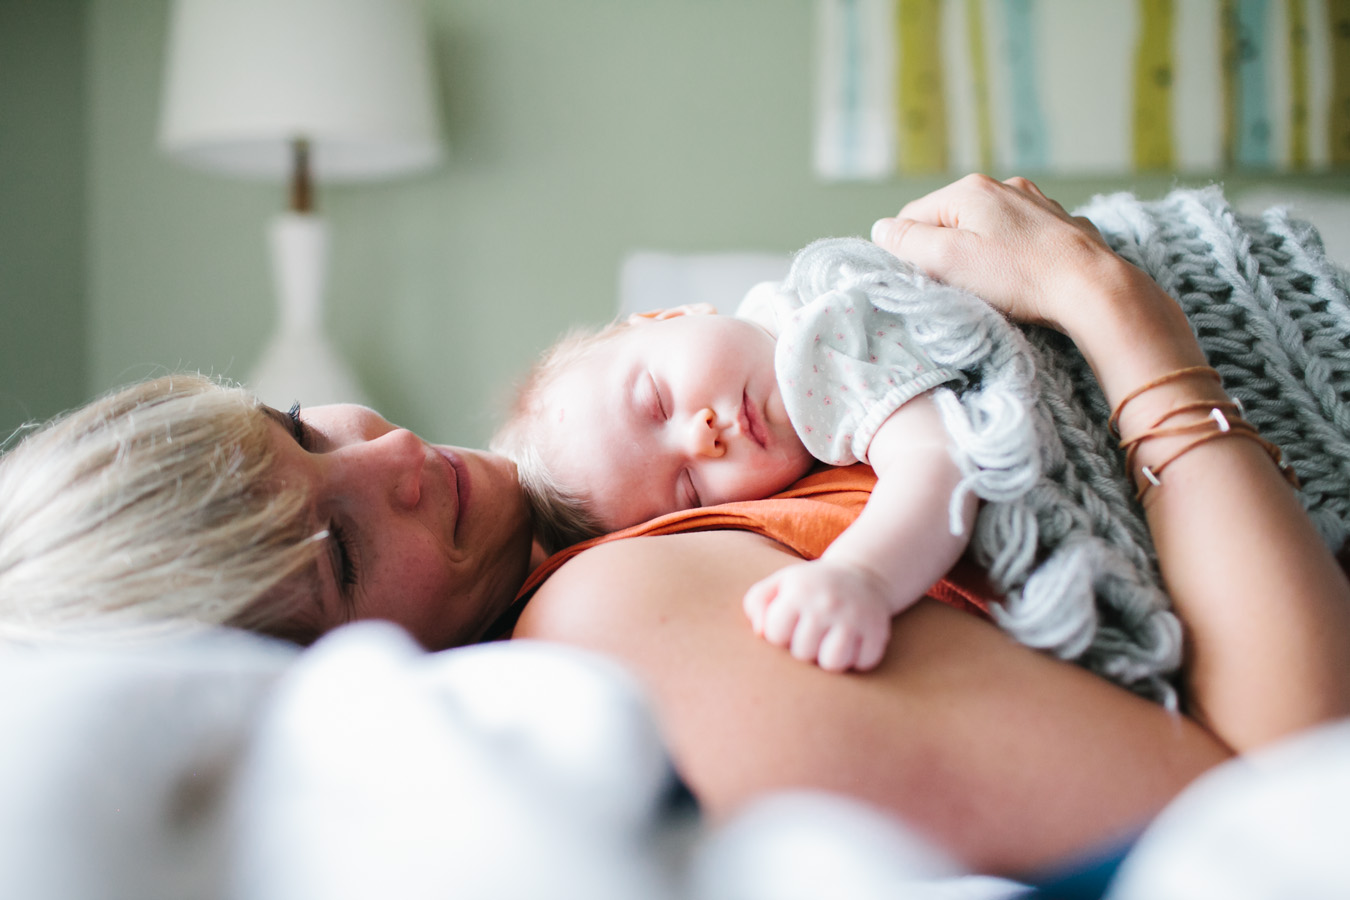 A mom cuddles her baby in bed, photo by Leah Verwey.